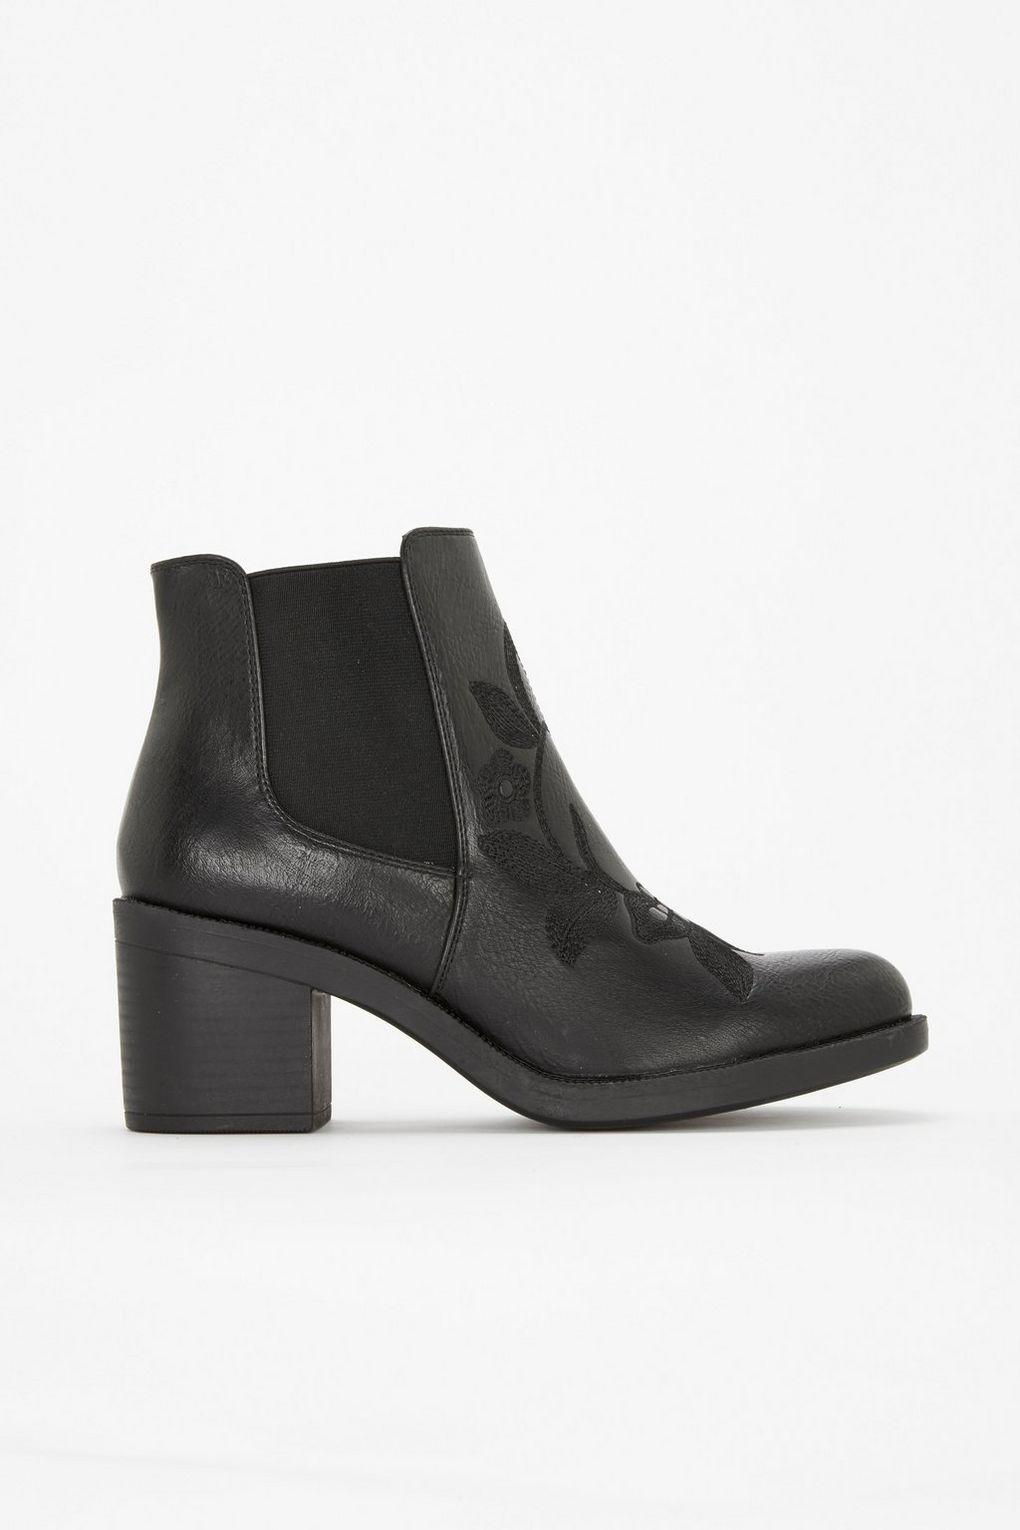 ed96a2e98278 Wallis Black Embroidered Chelsea Boot in Black - Lyst